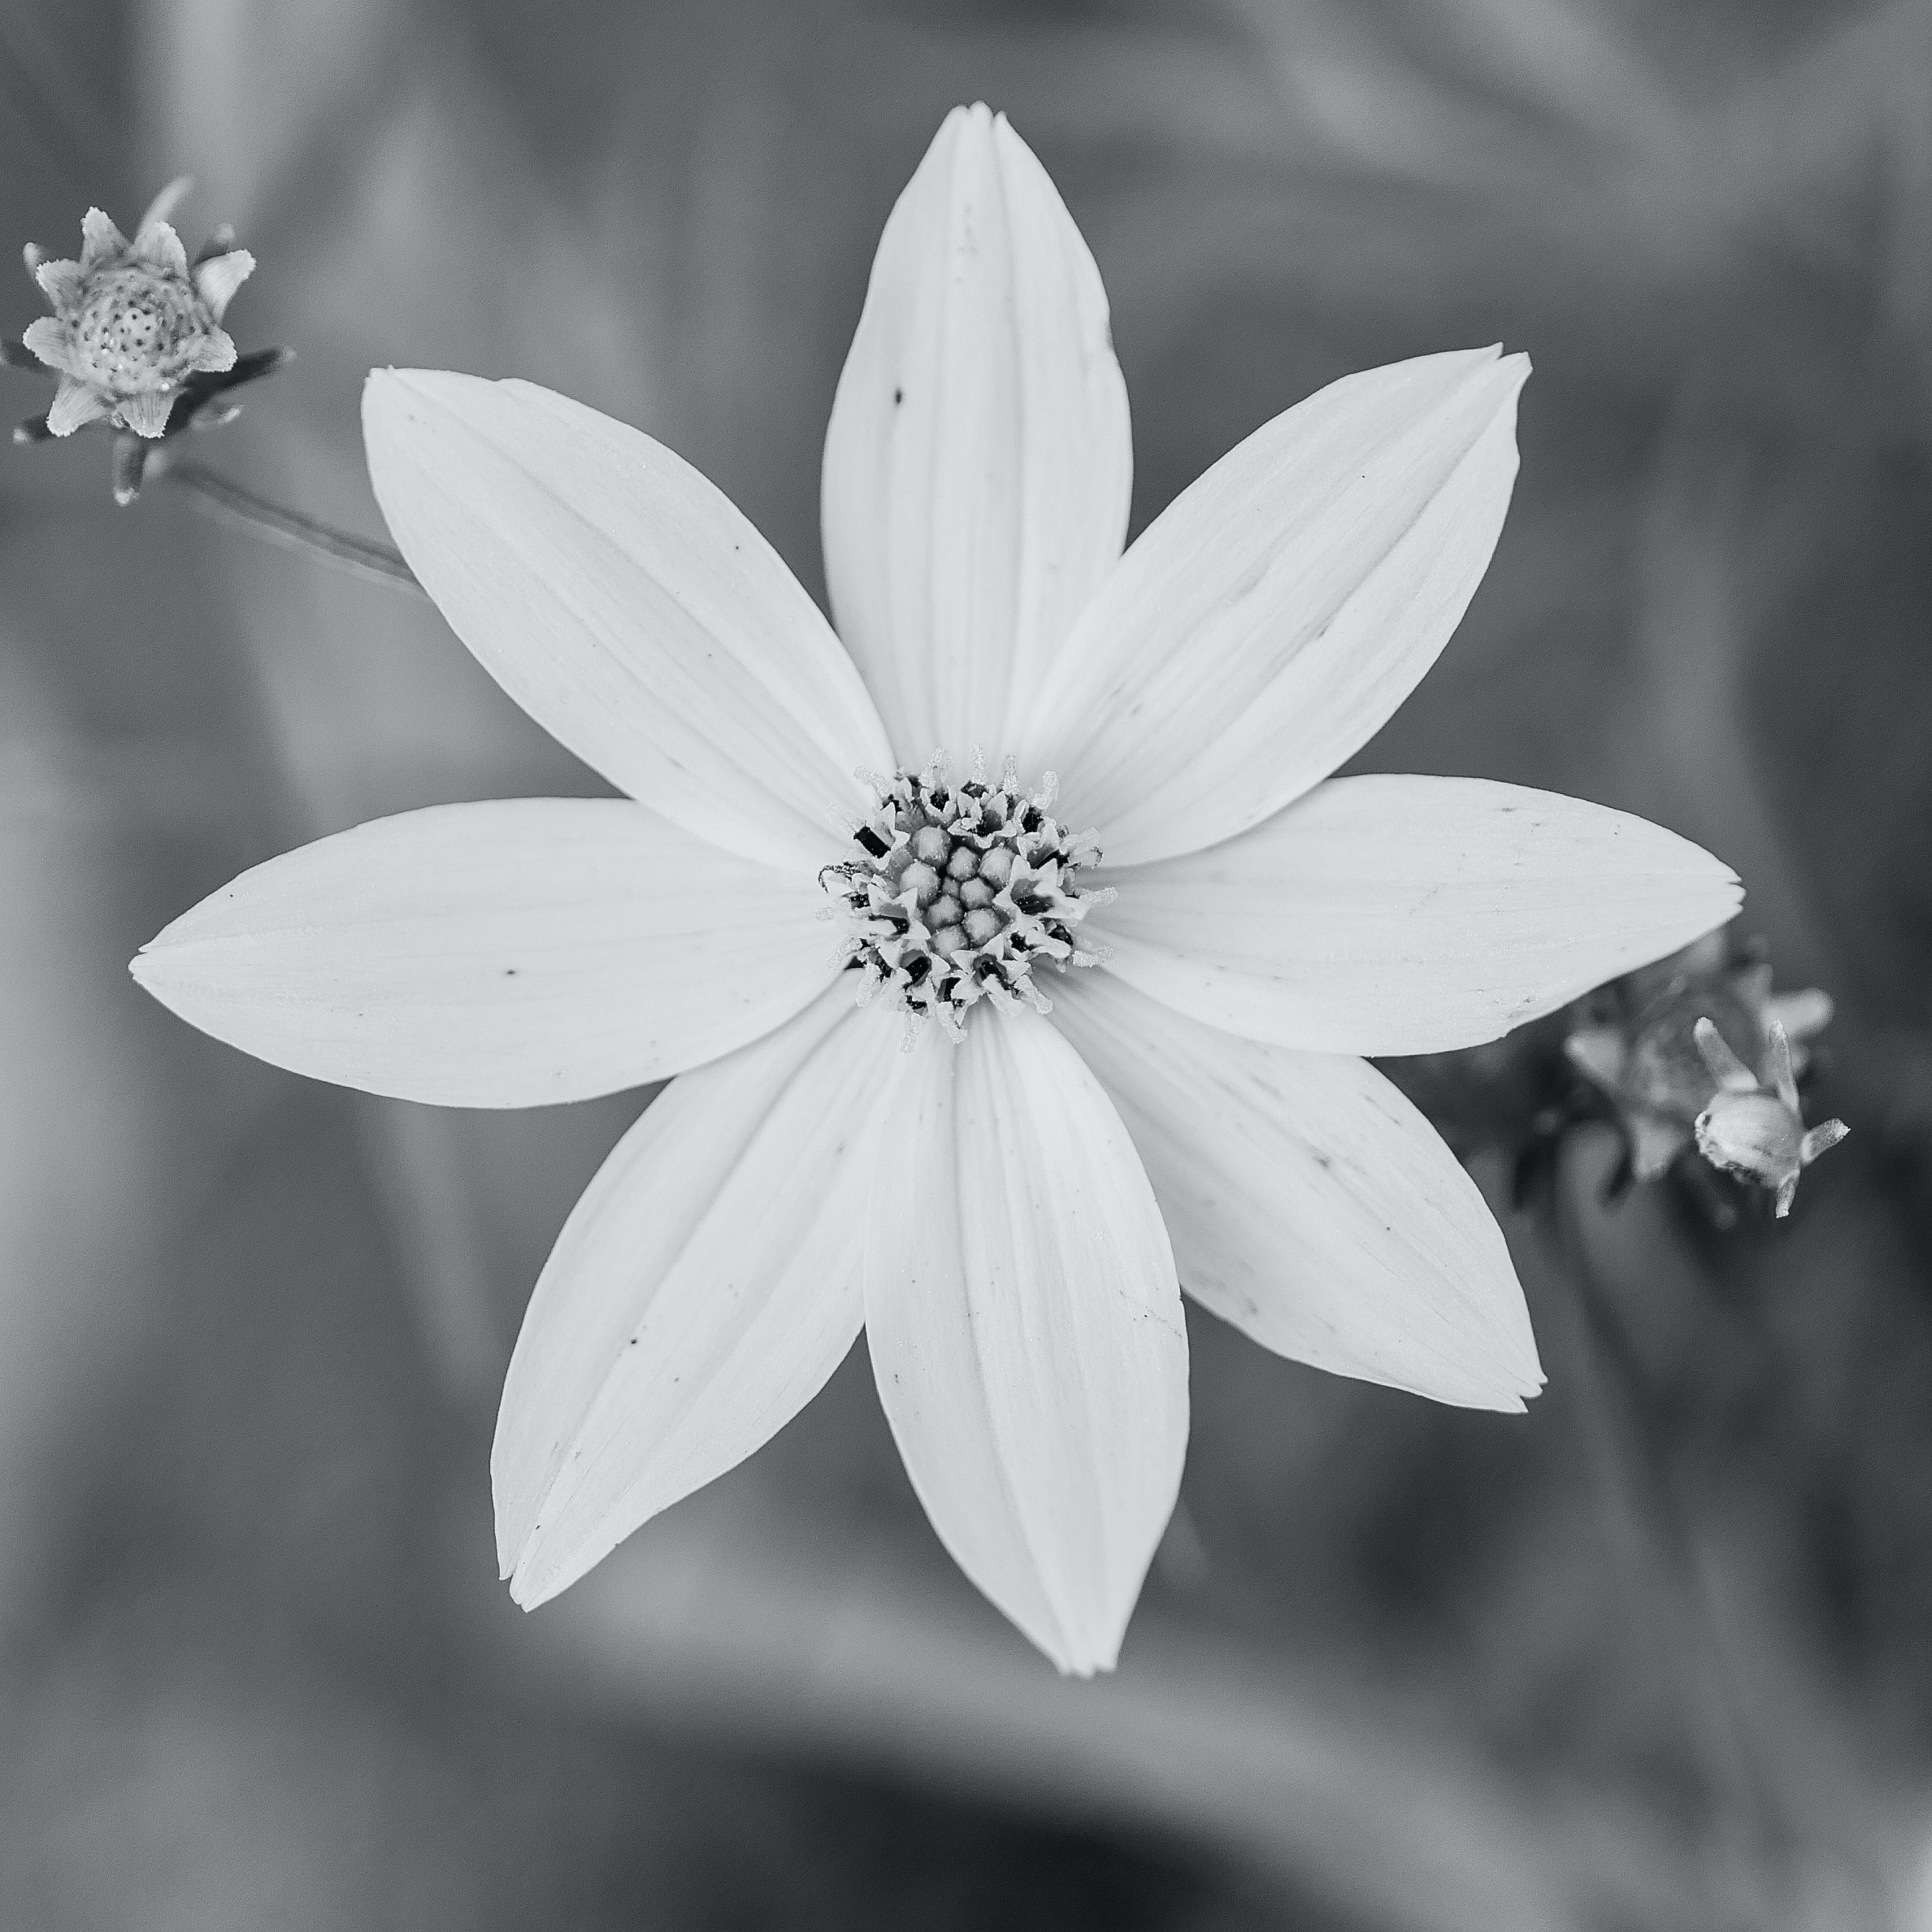 Great beautiful flowers in black and white gallery wedding and free stock photo of beautiful beautiful flowers black and white mightylinksfo Image collections